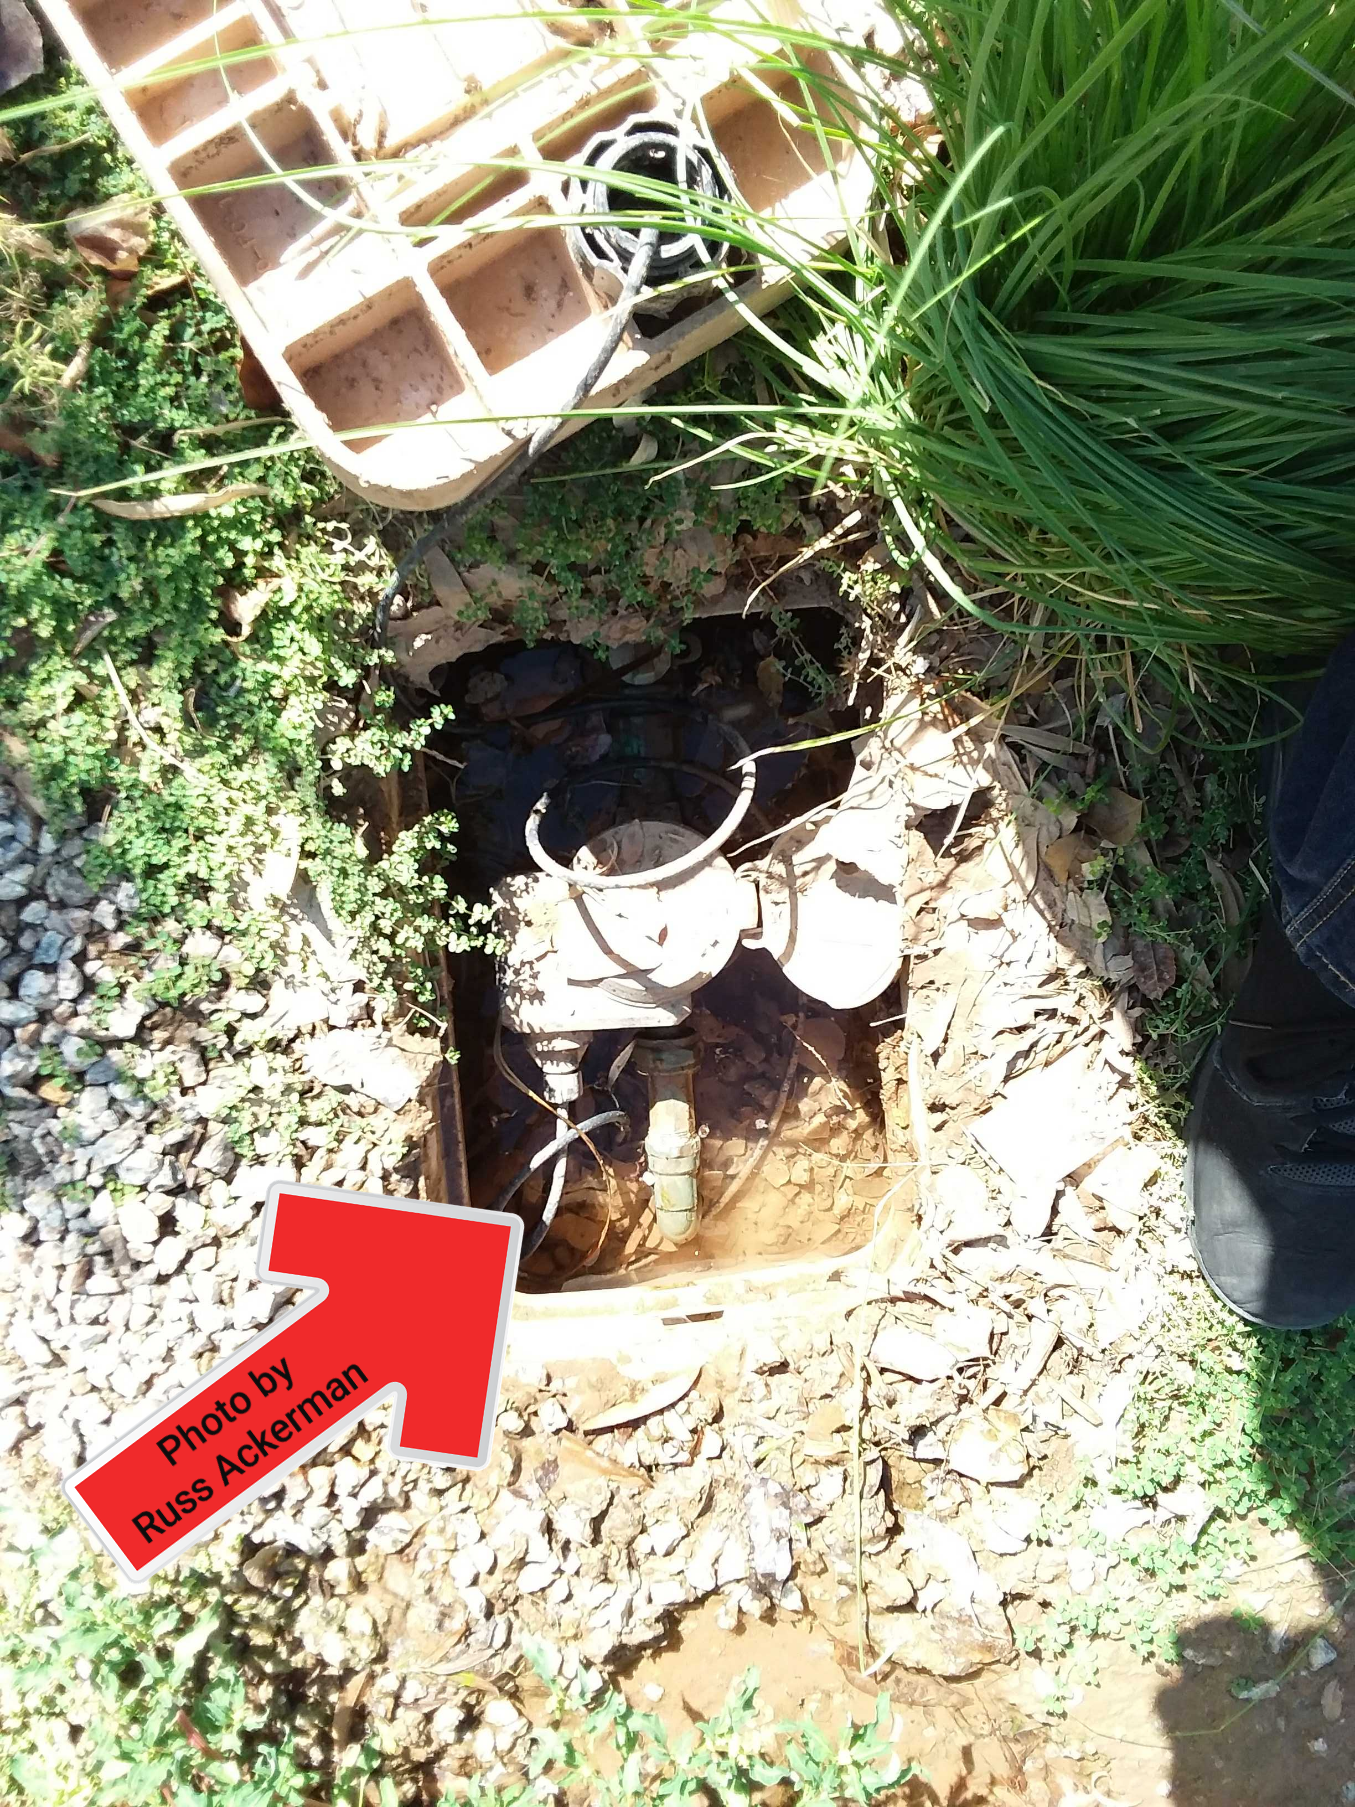 This water meter was under water, not because the main was leaking, there was a nearby irrigation leak that was flooding the yard.